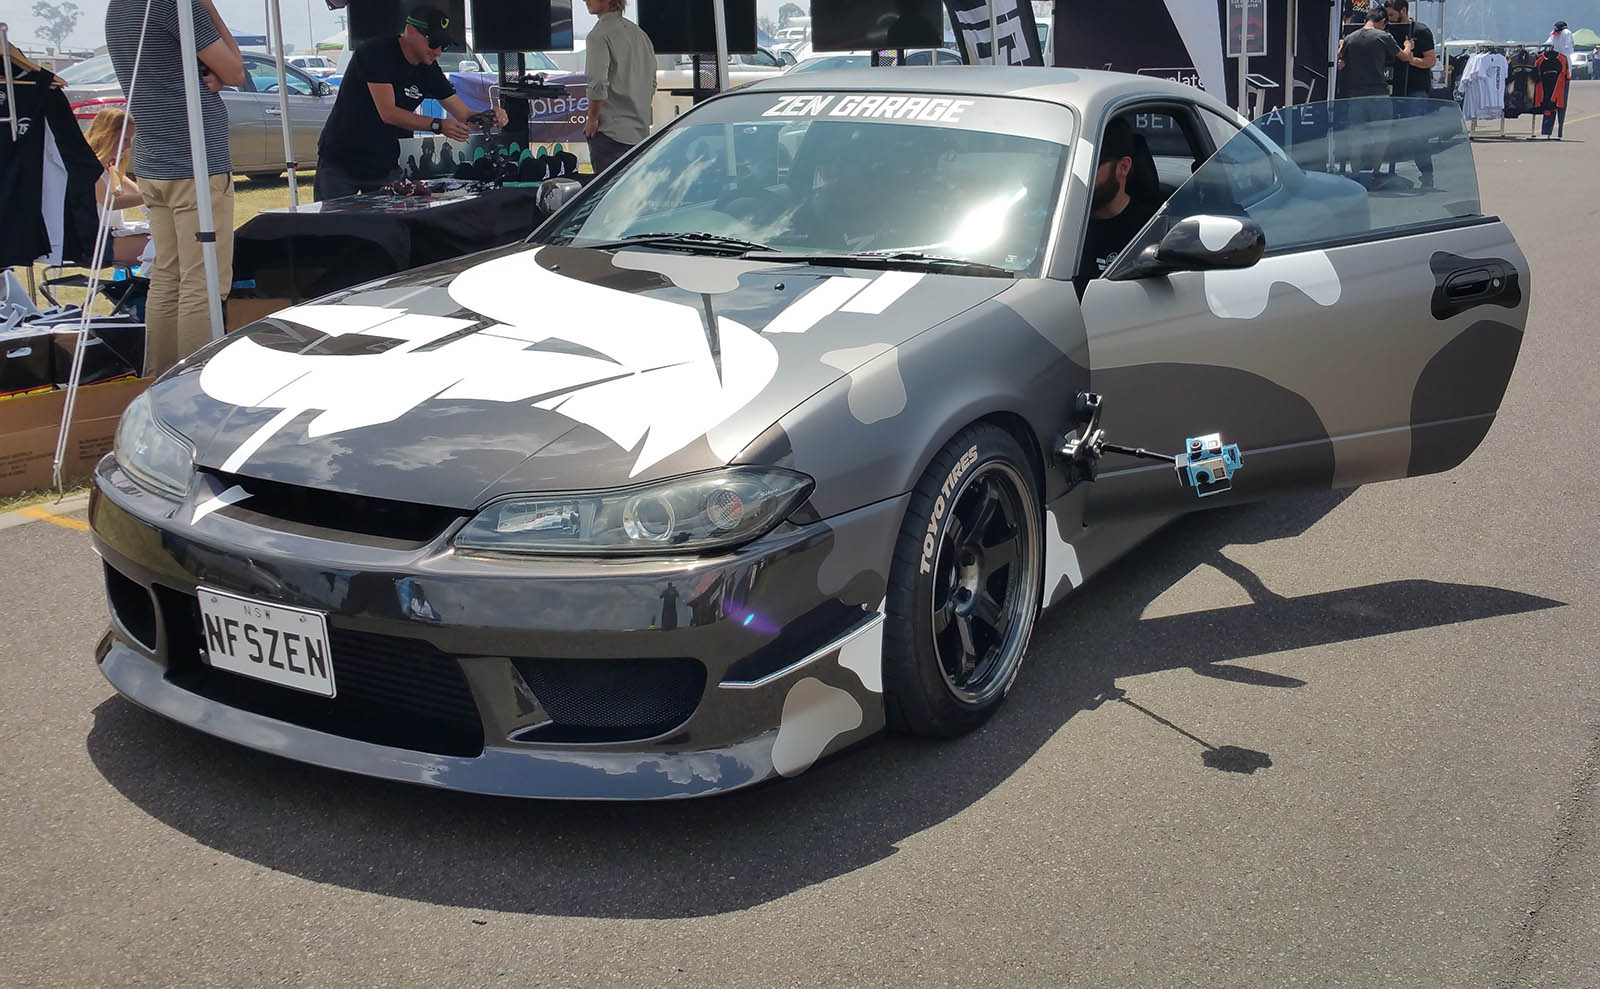 Need For Speed - Crew Create project S15 by Zen Garage with 360 rig mounted on the bonnet